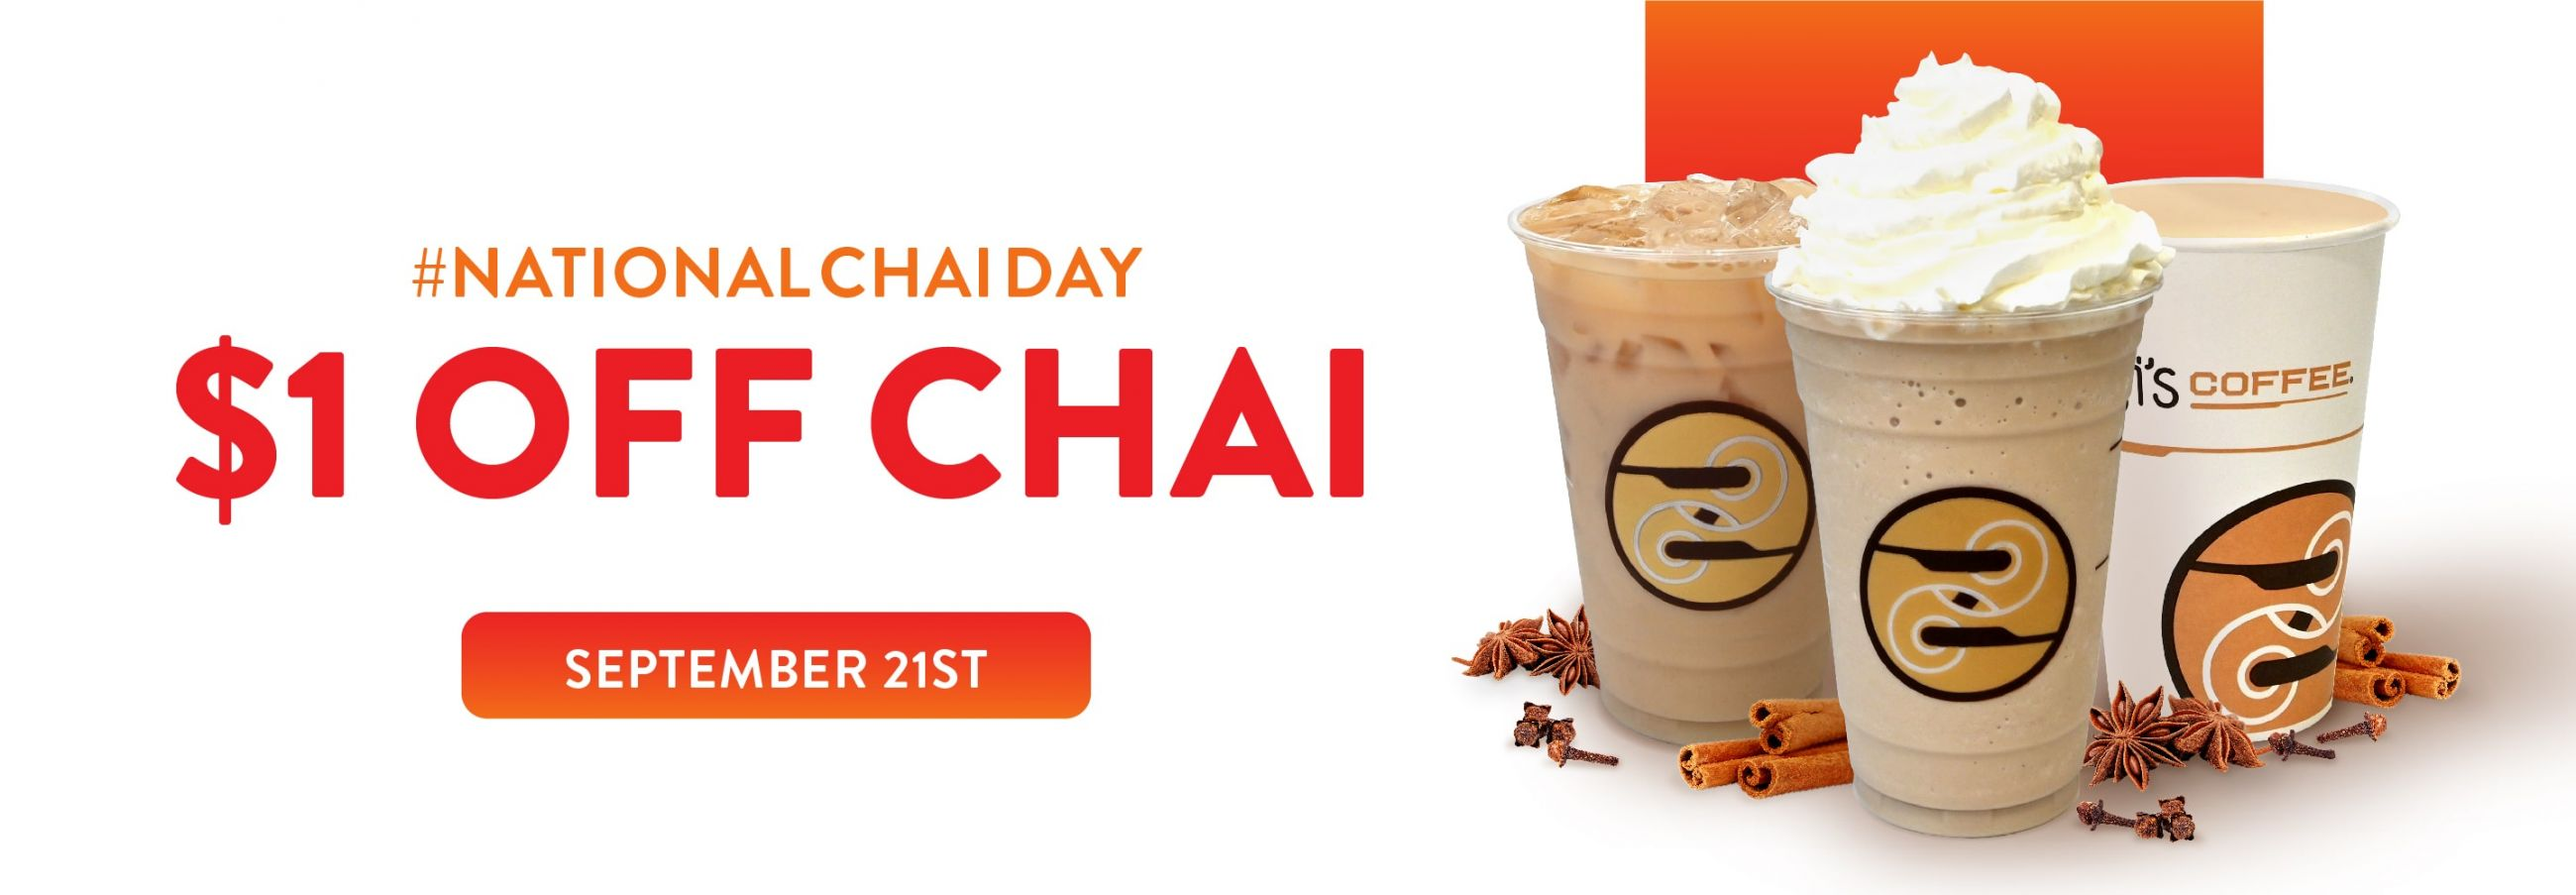 Receive $1.00 off on September 21st for National Chai Day